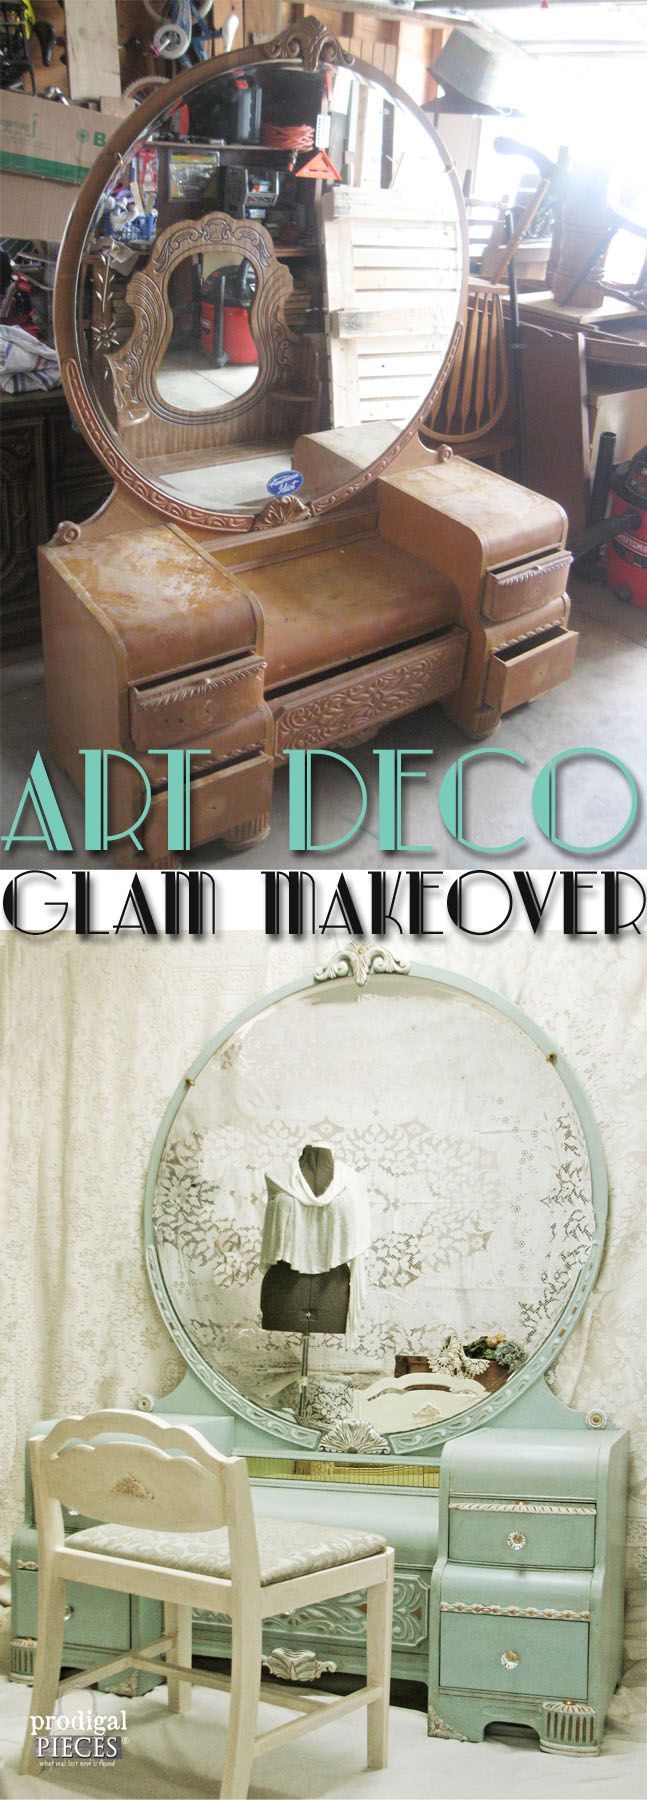 Art Deco Glam Makeover by Prodigal Pieces www.prodigalpieces.com #prodigalpieces                                                                                                                                                      More